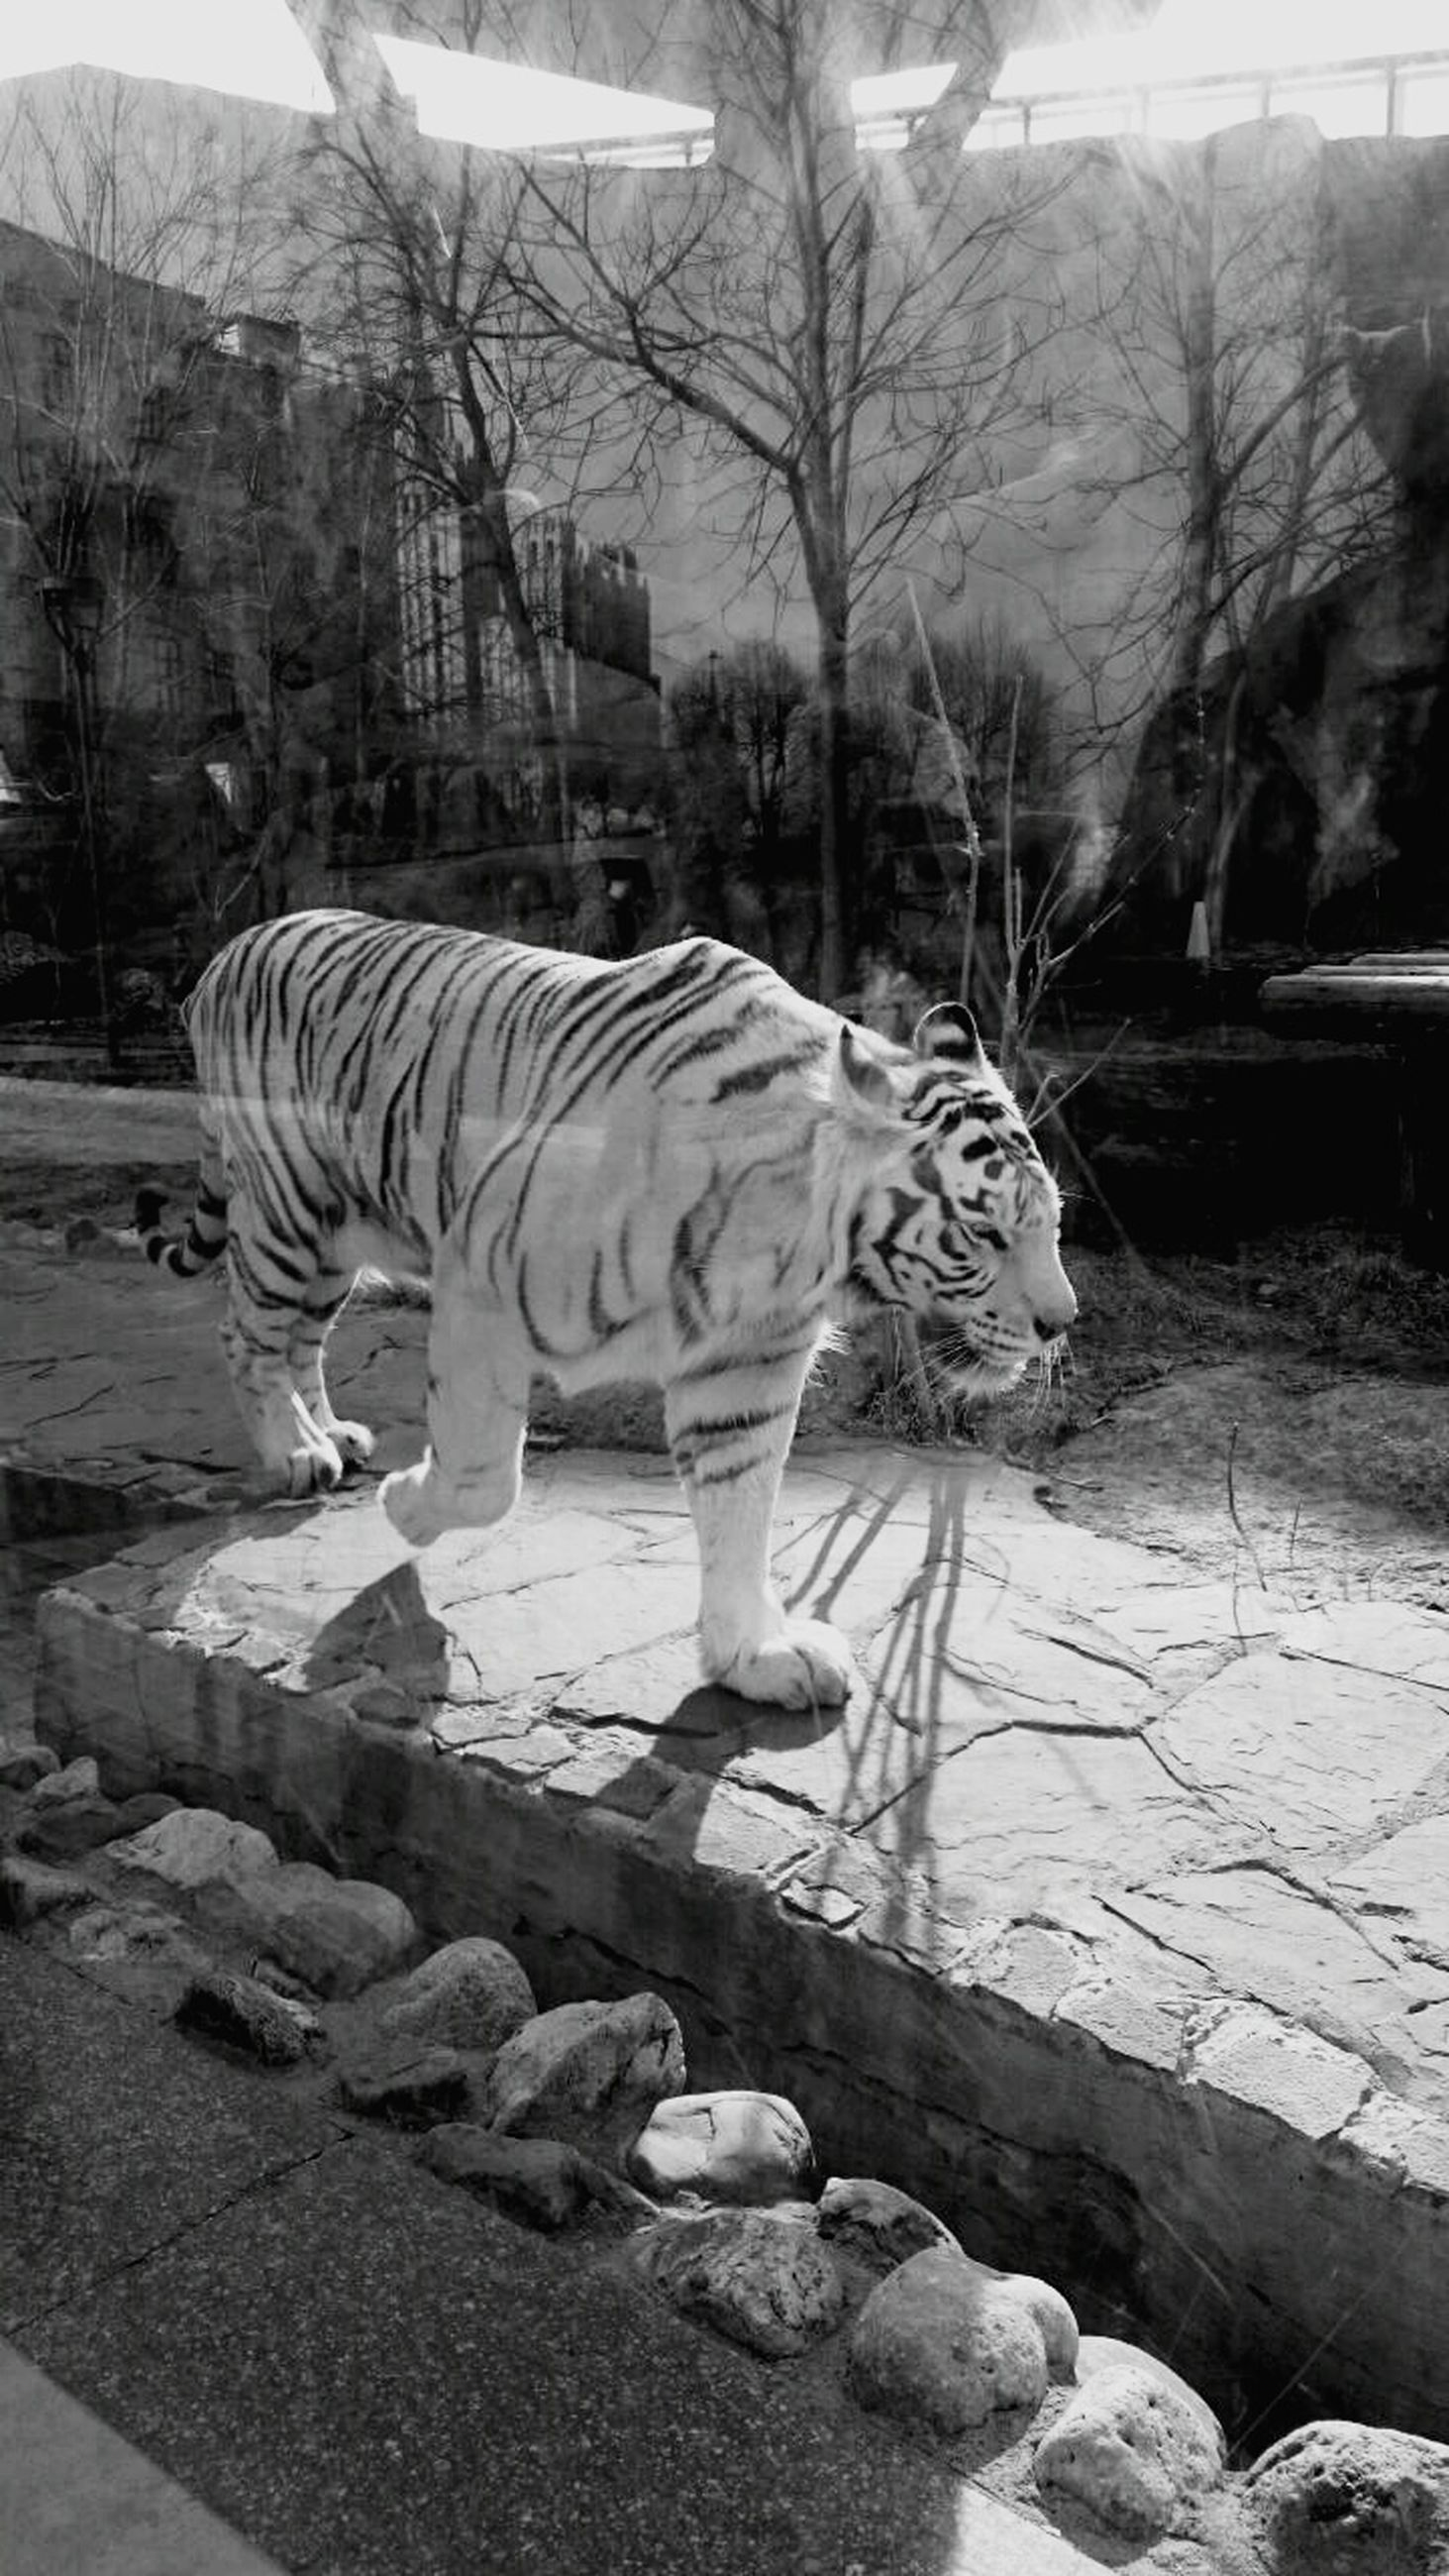 animal themes, animals in the wild, wildlife, one animal, bird, zoo, zebra, mammal, full length, animals in captivity, two animals, zoology, outdoors, side view, no people, tree, day, safari animals, nature, standing